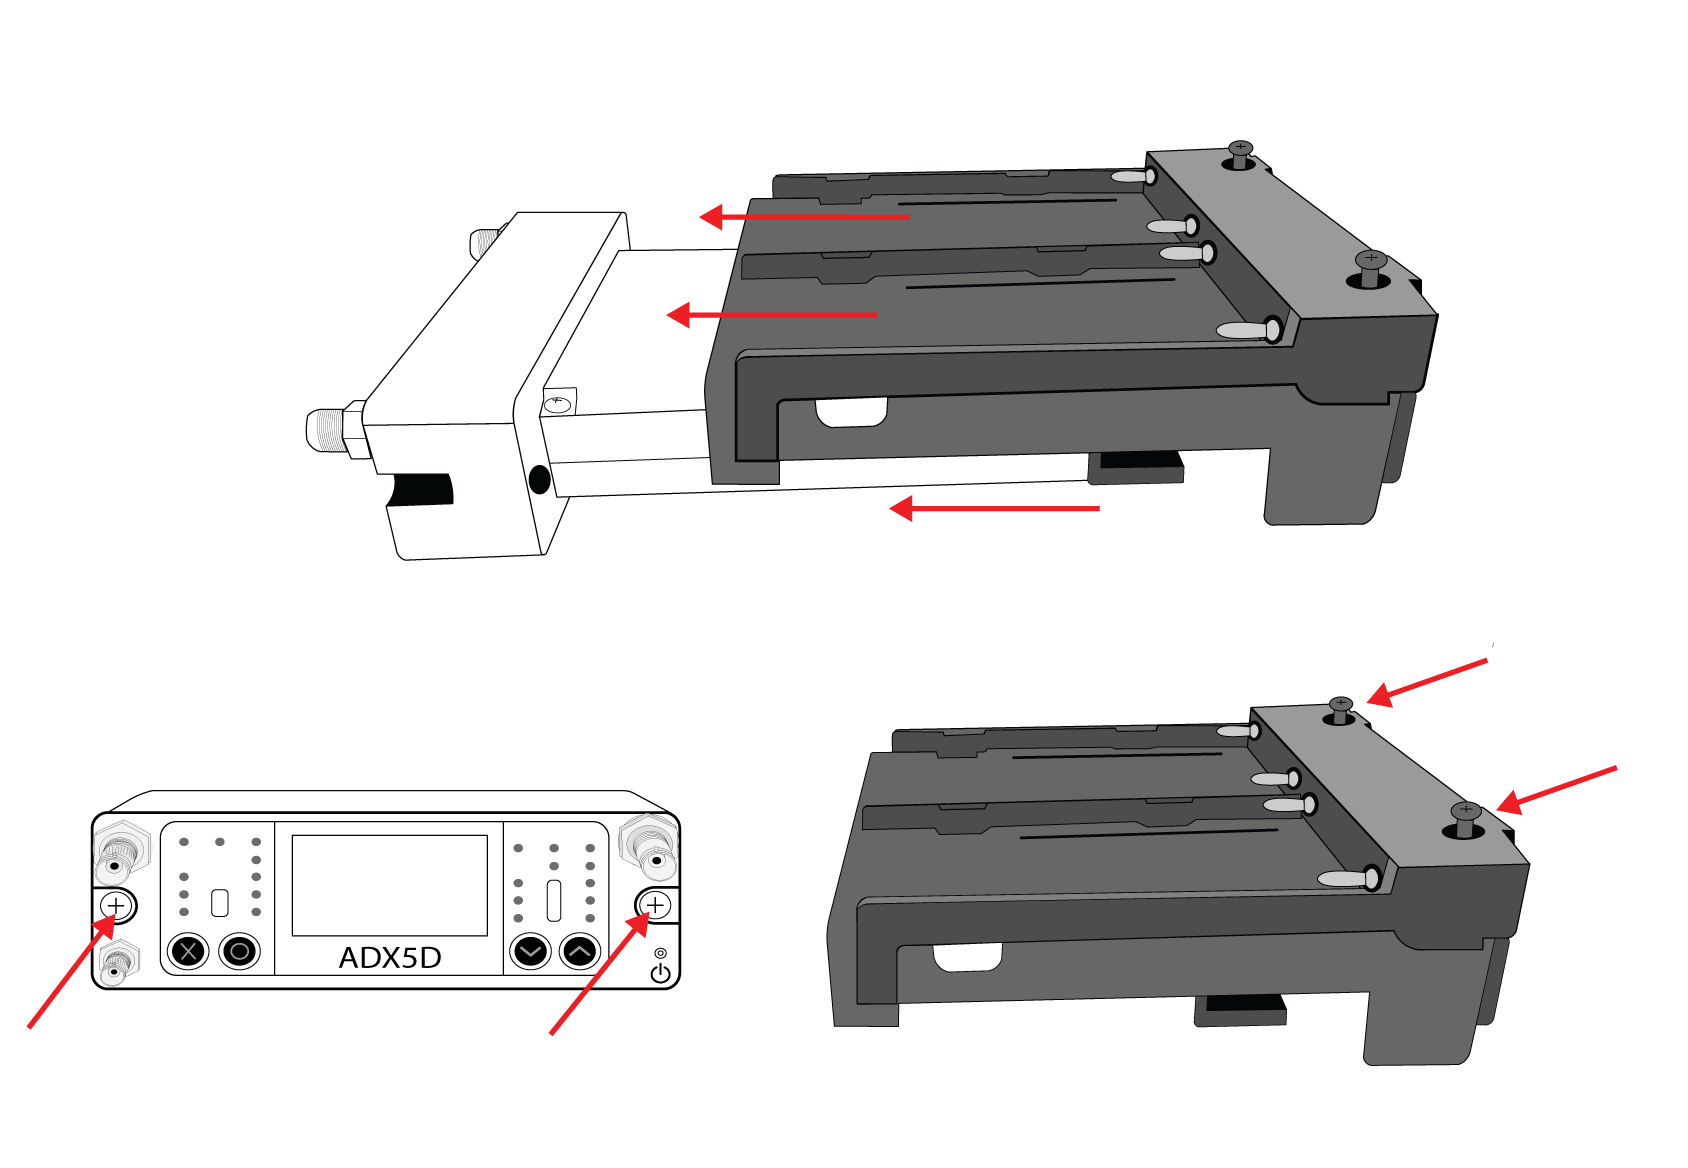 The battery sled being slotted on to the receiver. There are arrows calling out the screws that secure the sled.